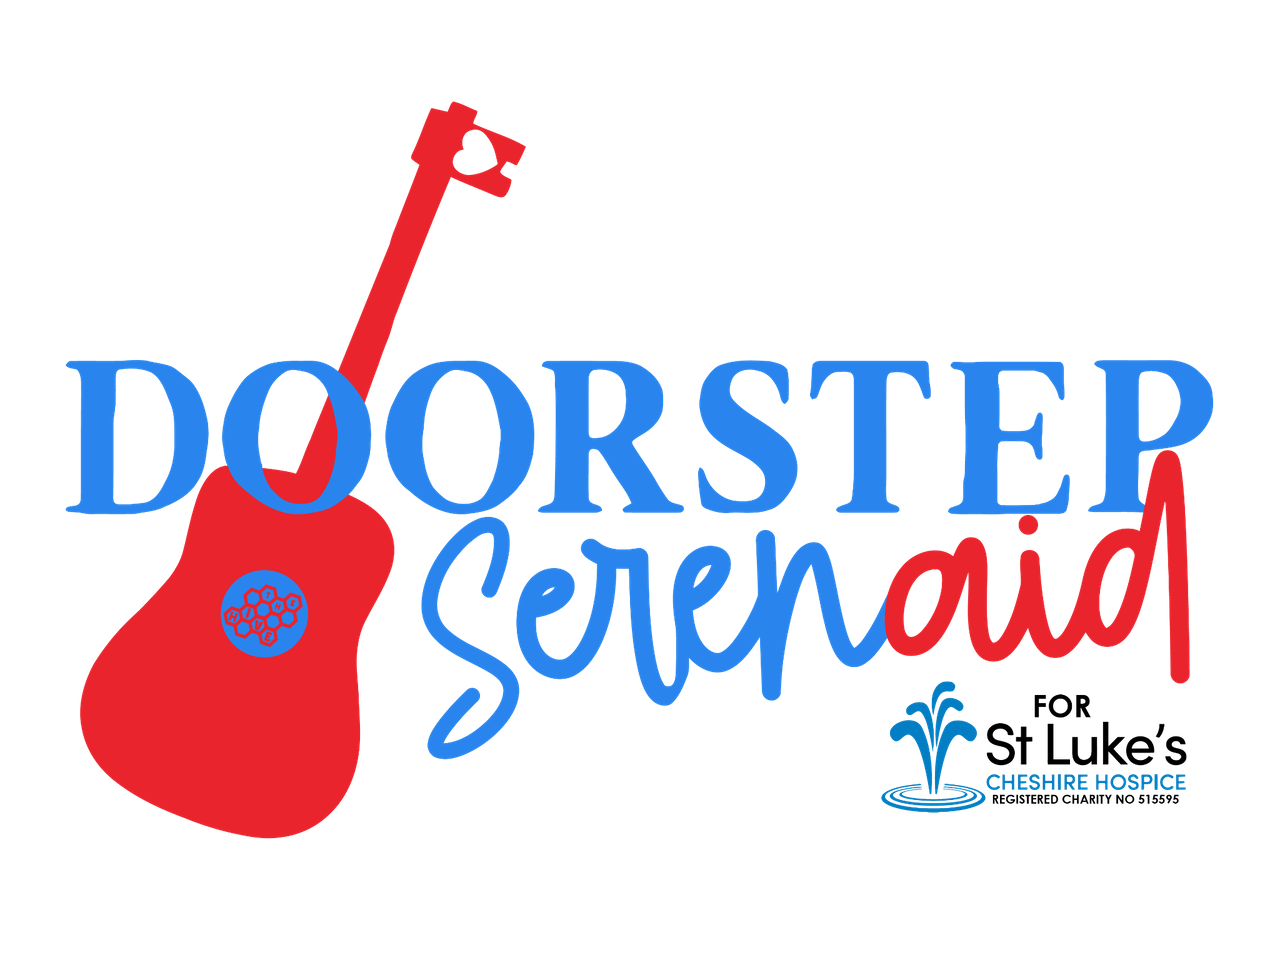 Doorstep Serenaid